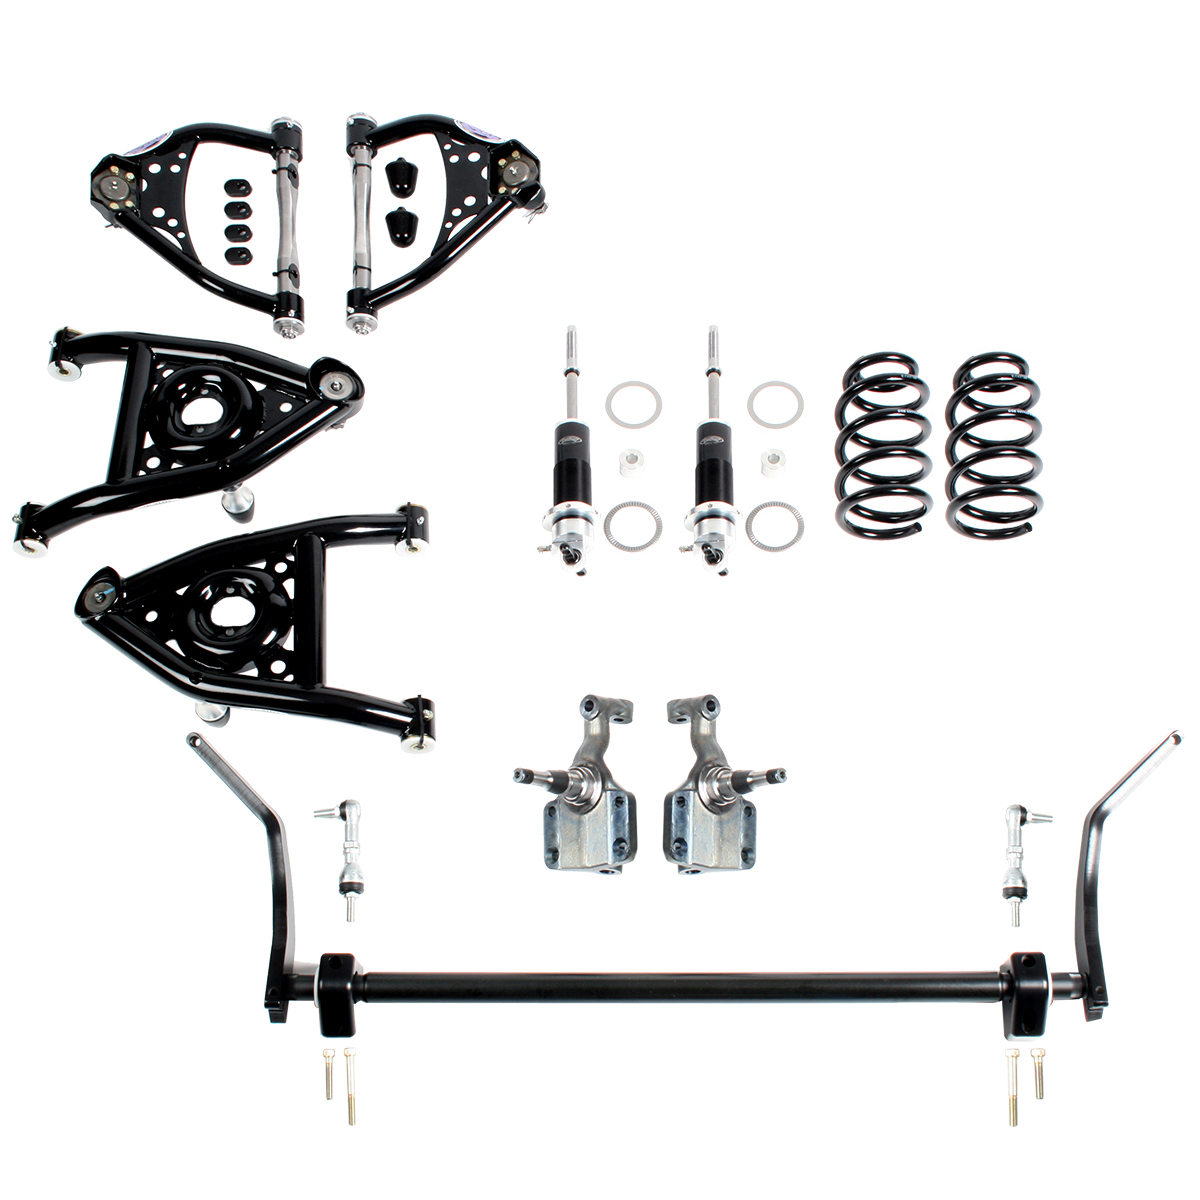 Detroit Speed  Speed Kit 2 Front Suspension Kit with Splined Sway Bar Double Adjustable Shocks w/Remote Canister 1964-1966 A-Body -SBC/LS